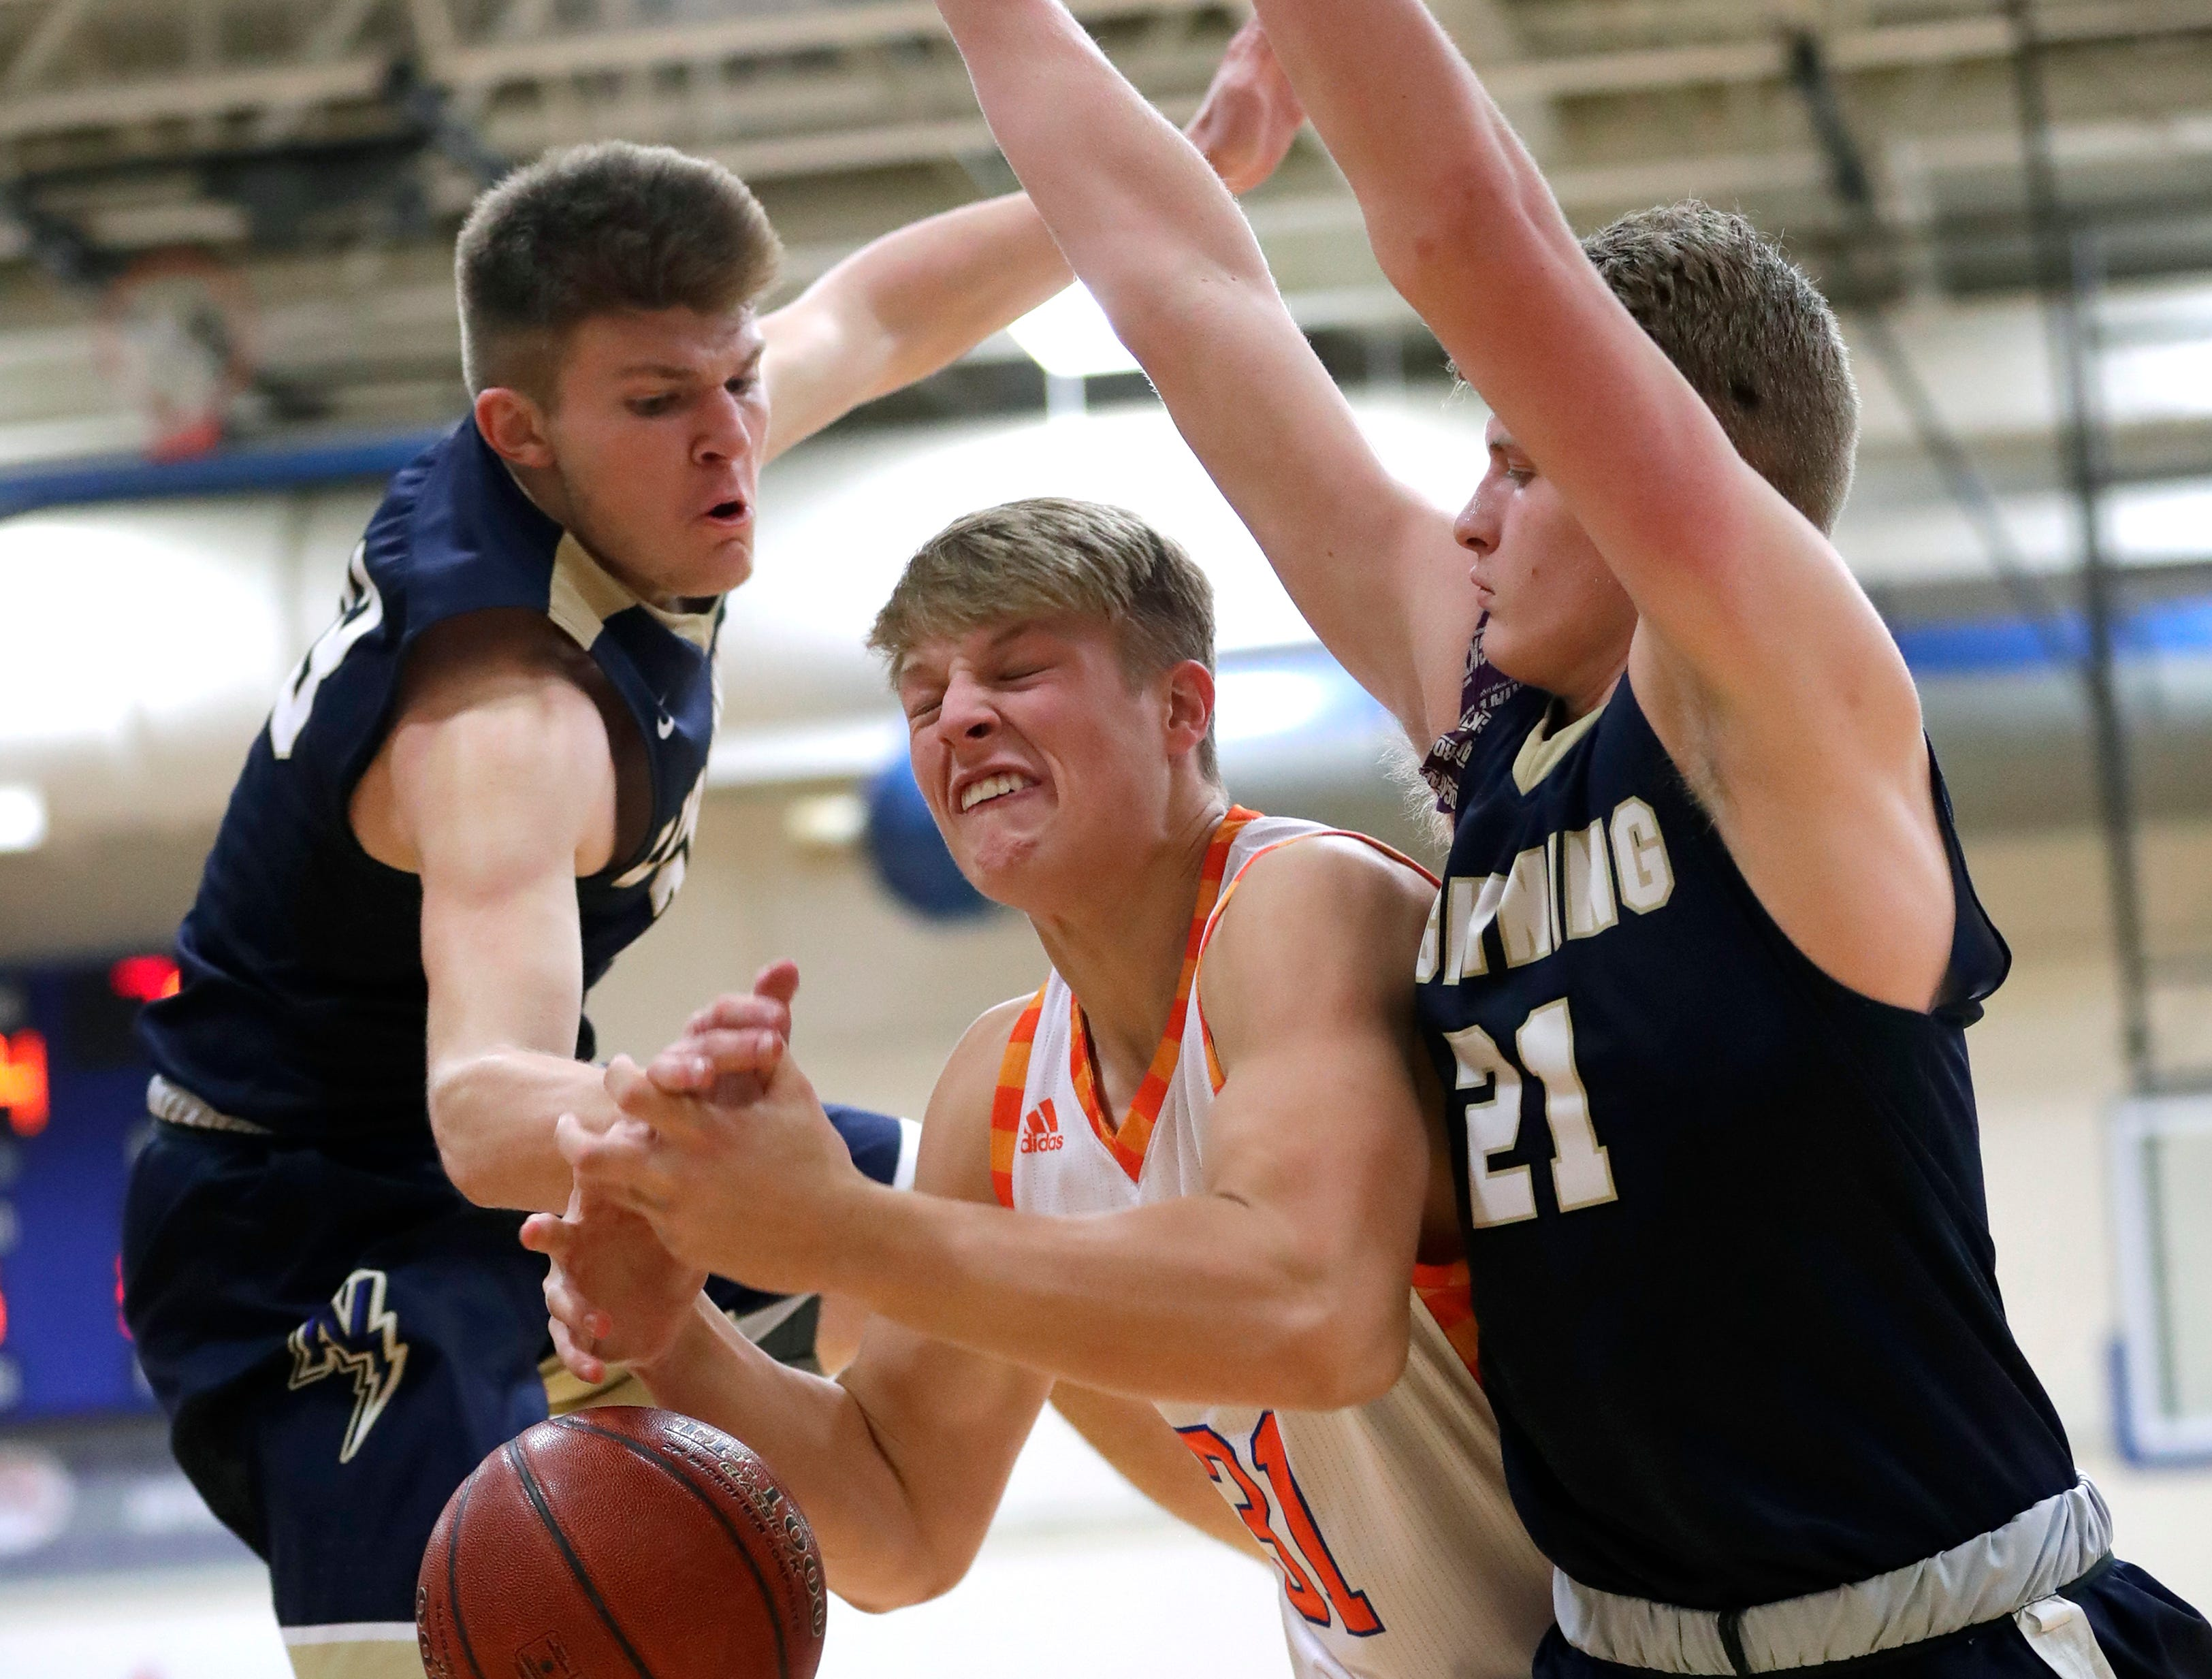 Appleton North High School's Devin Blom, left, and Luke Van Handel, right, defend against Appleton West High School's Sam Pitz during their boys basketball game Friday, January 25, 2019, at Appleton West High School in Appleton, Wis. 